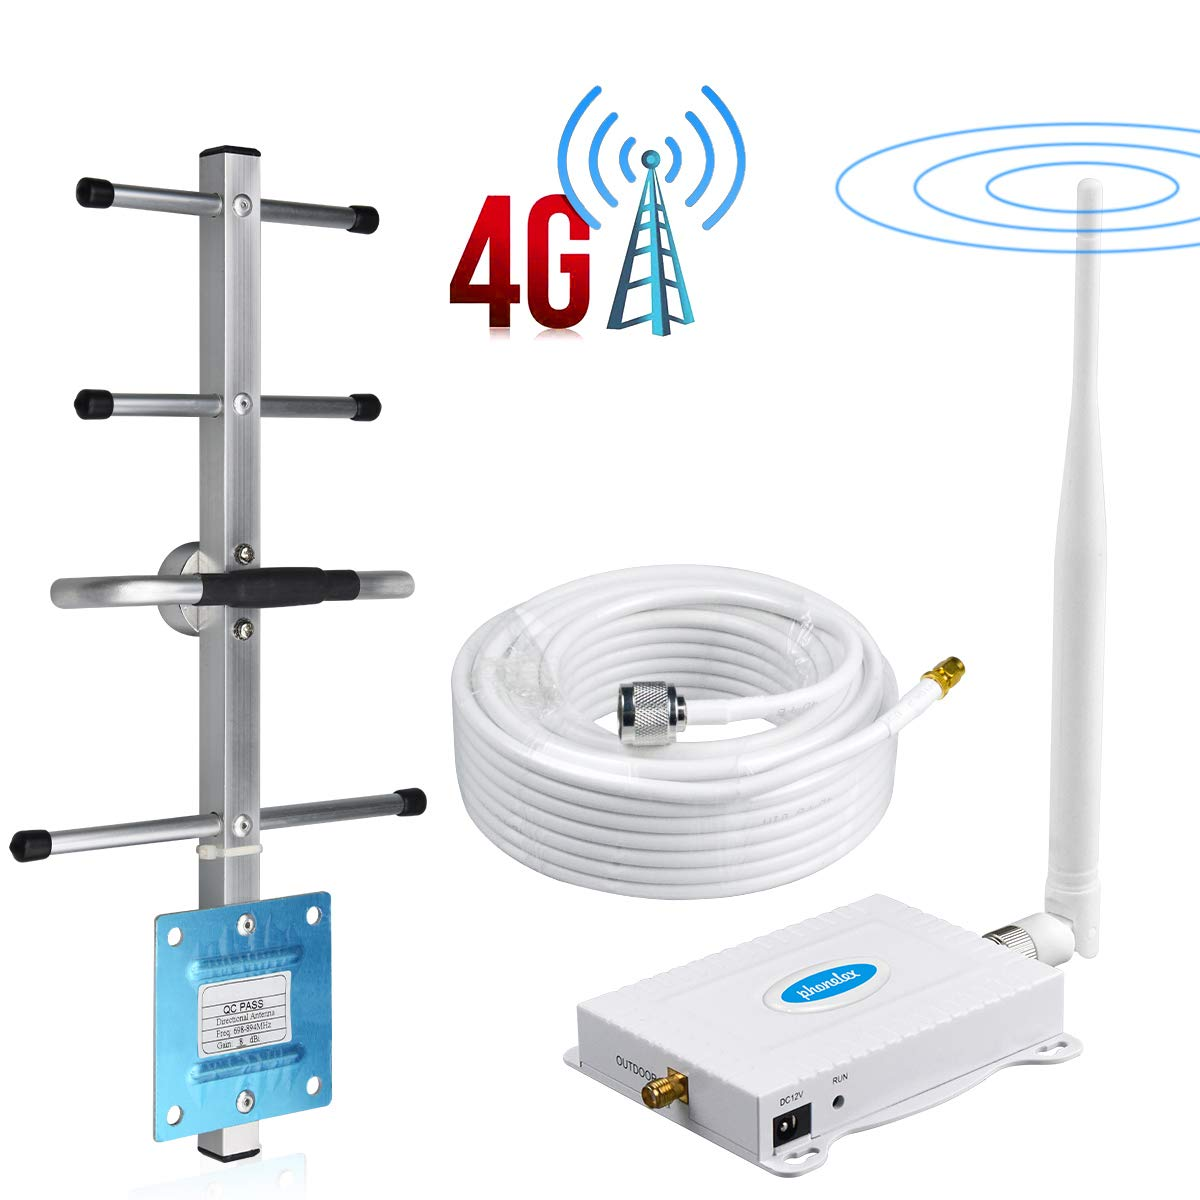 Phonelex1 Cell Phone Signal Booster AT&T 4G LTE Band 12/17T-Mobile 700Mhz Signal Booster ATT Cell Phone Booster Repeater Amplifier AT&T Mobile Phone Signal Booster with Whip+Yagi Antenna Kit For Home by Phonelex1